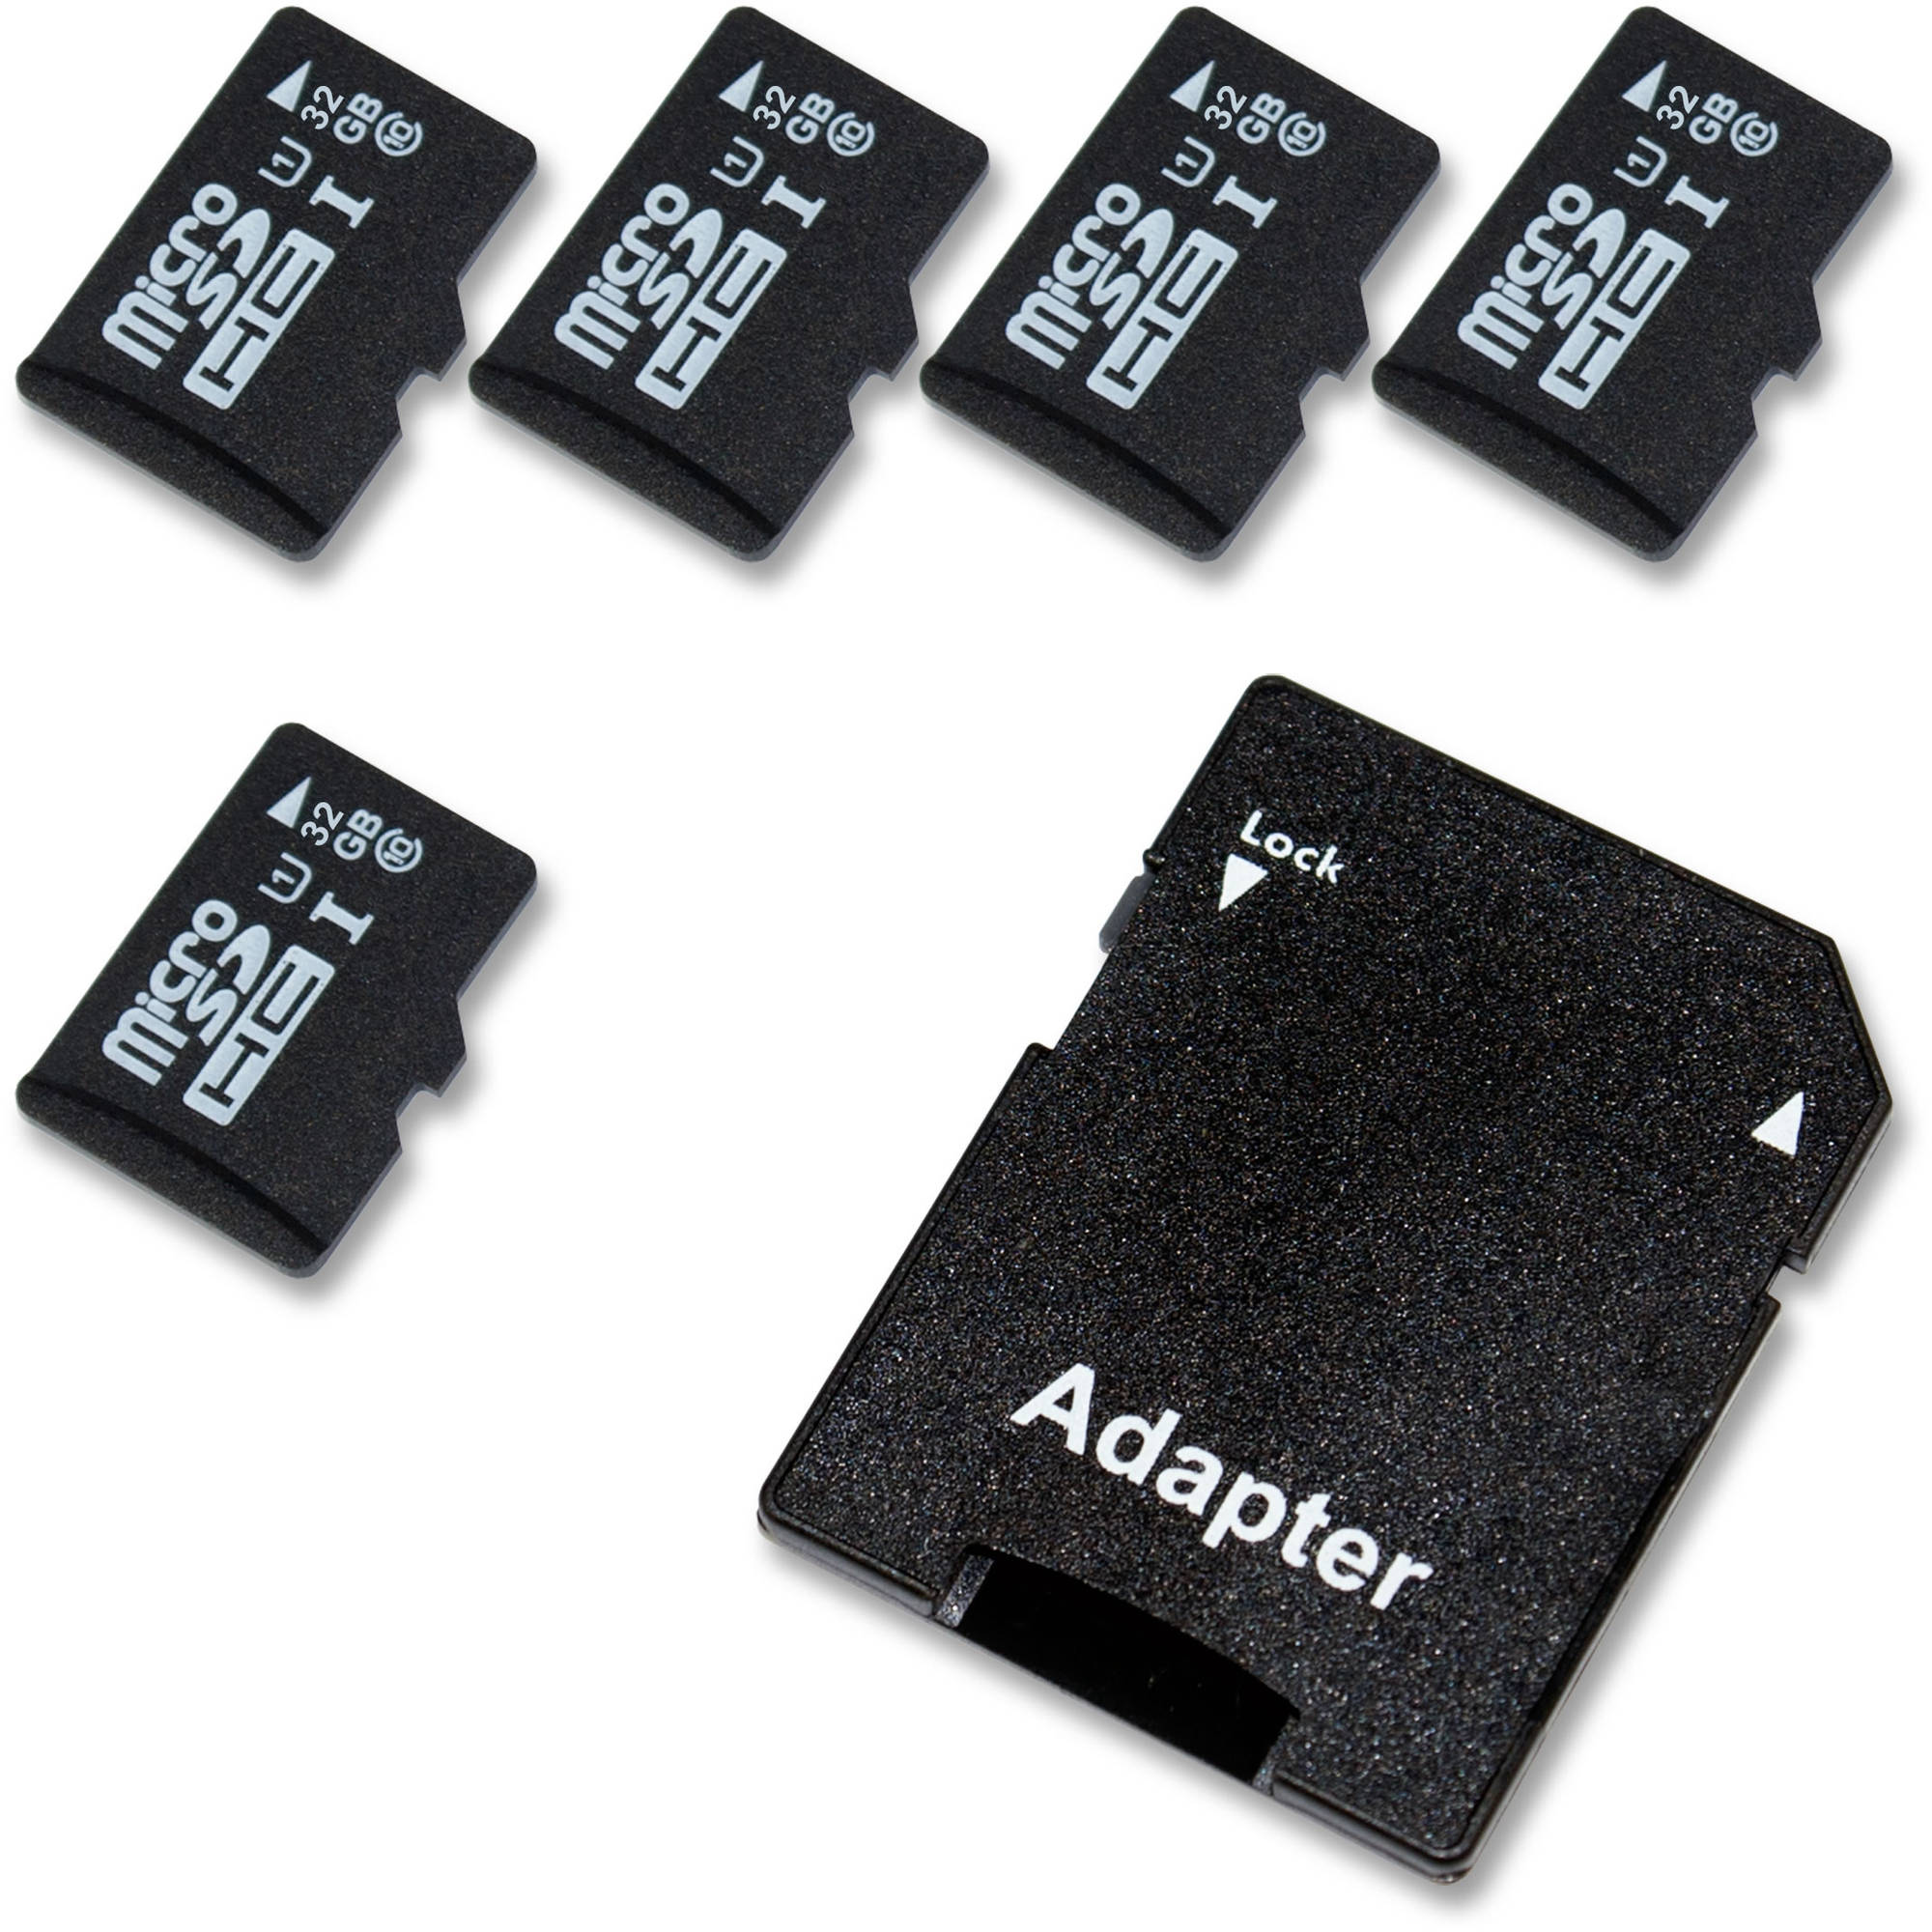 32GB GorillaFlash microSDHC Class 10 with Adapter 5-Pack